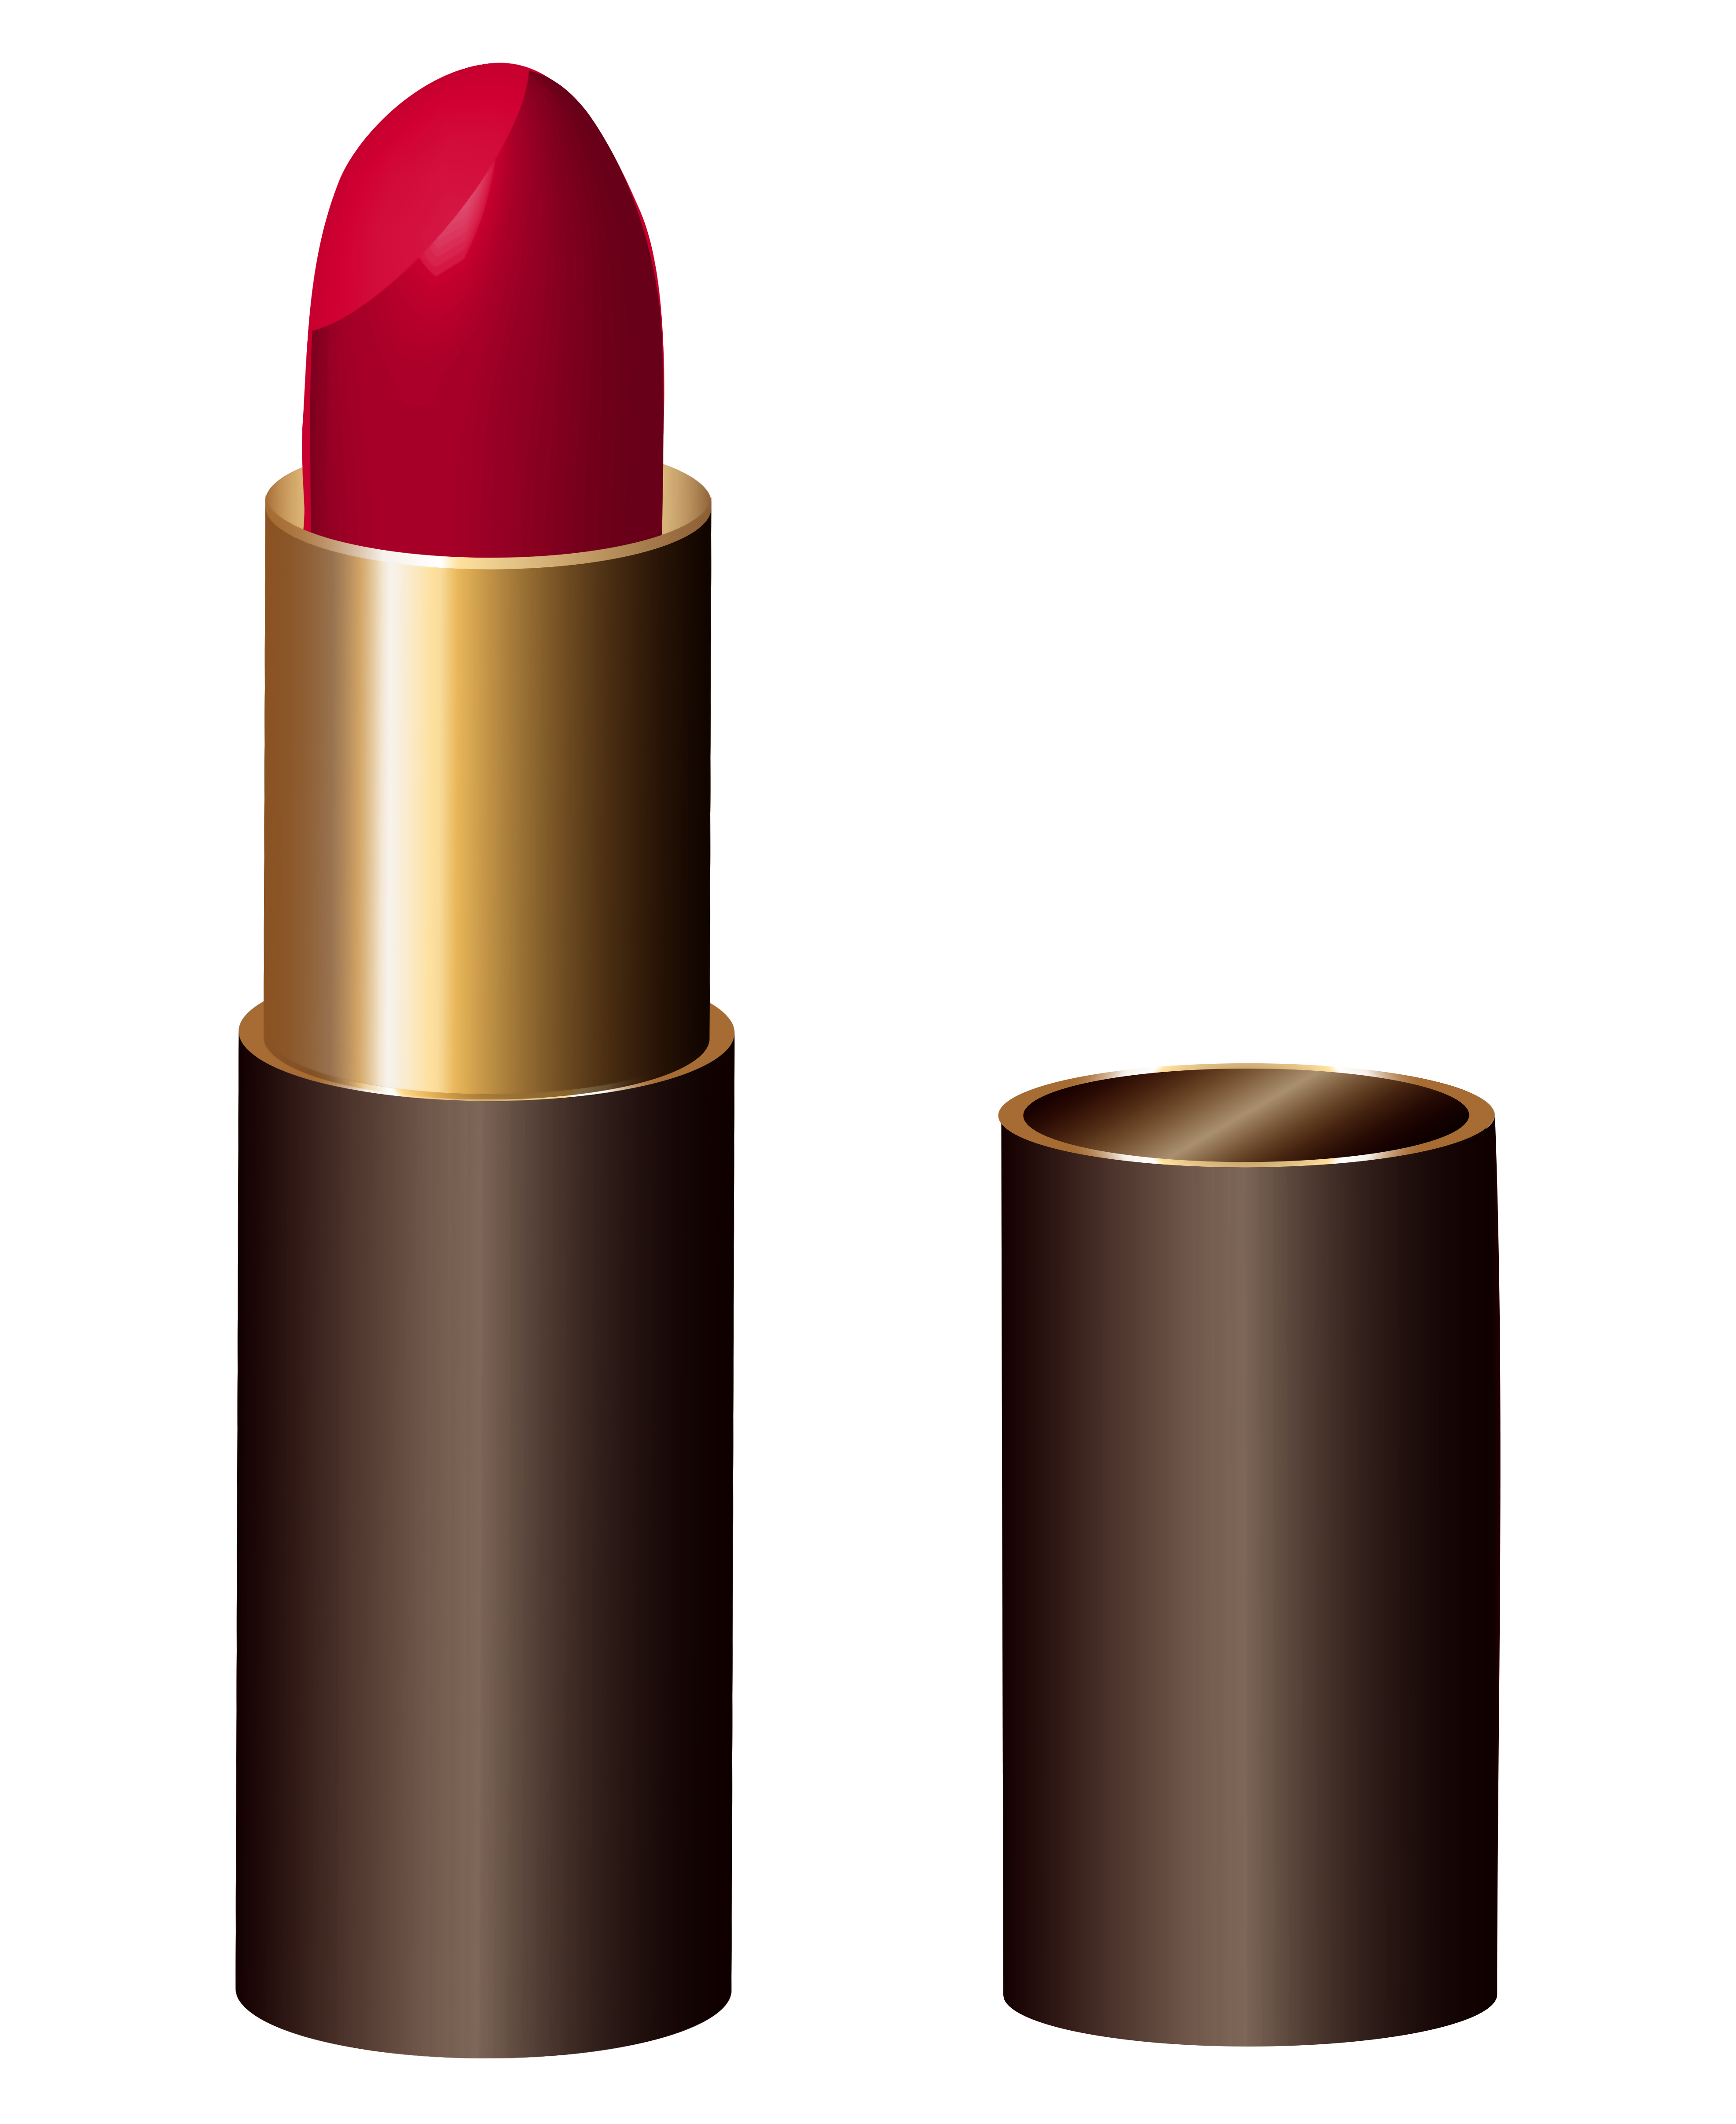 Lipstick clipart transparent stock Free Lipstick Cliparts, Download Free Clip Art, Free Clip Art on ... stock